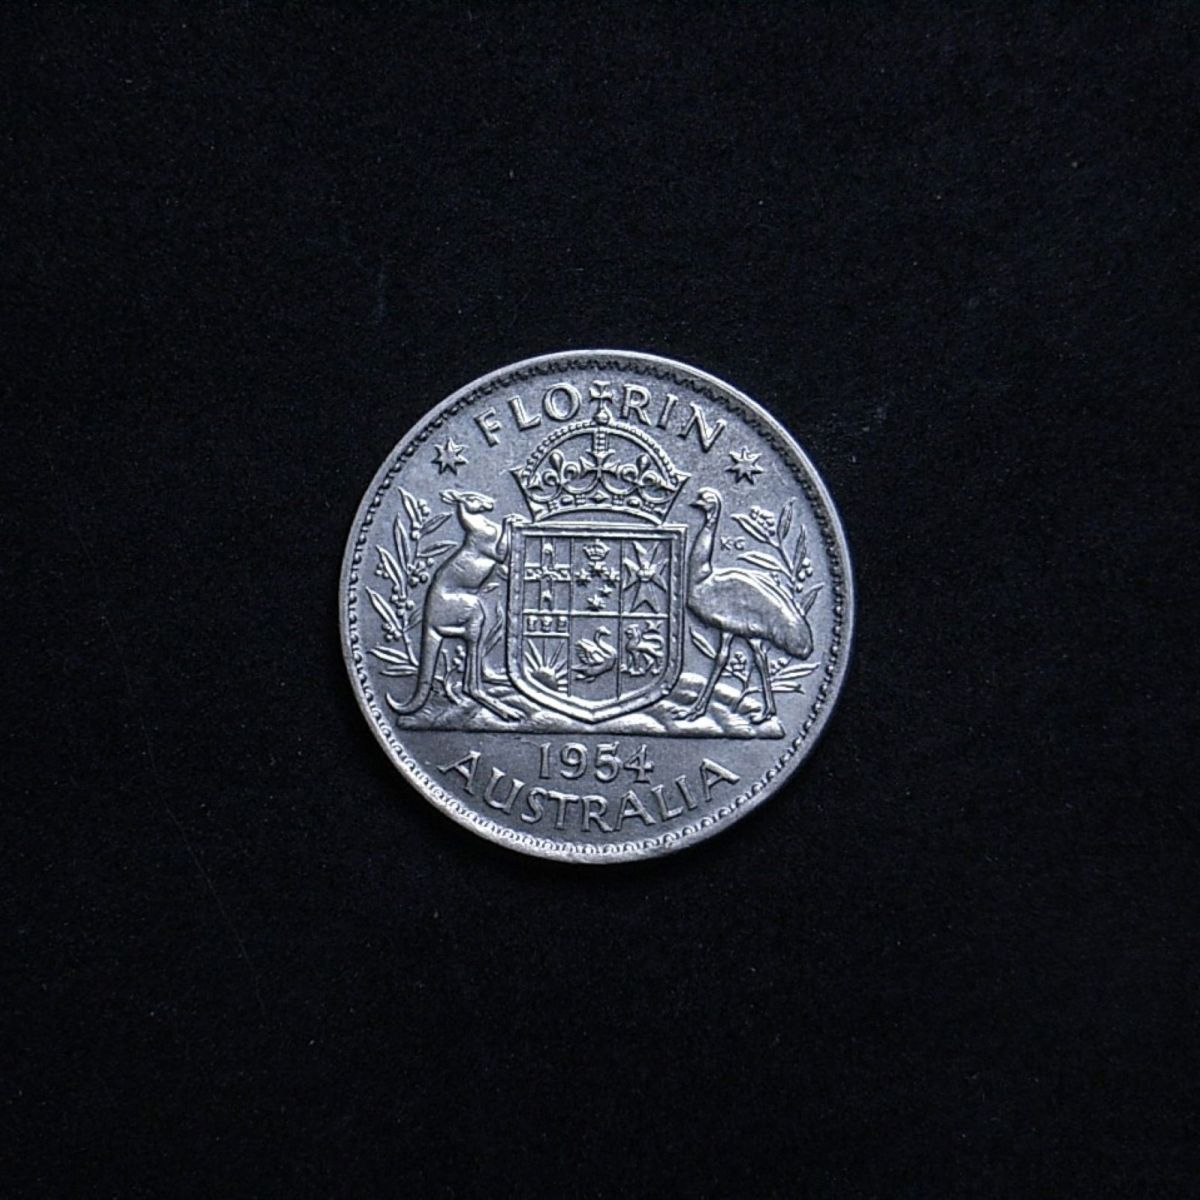 Aussie 1954 florin reverse showing lustre on the coin